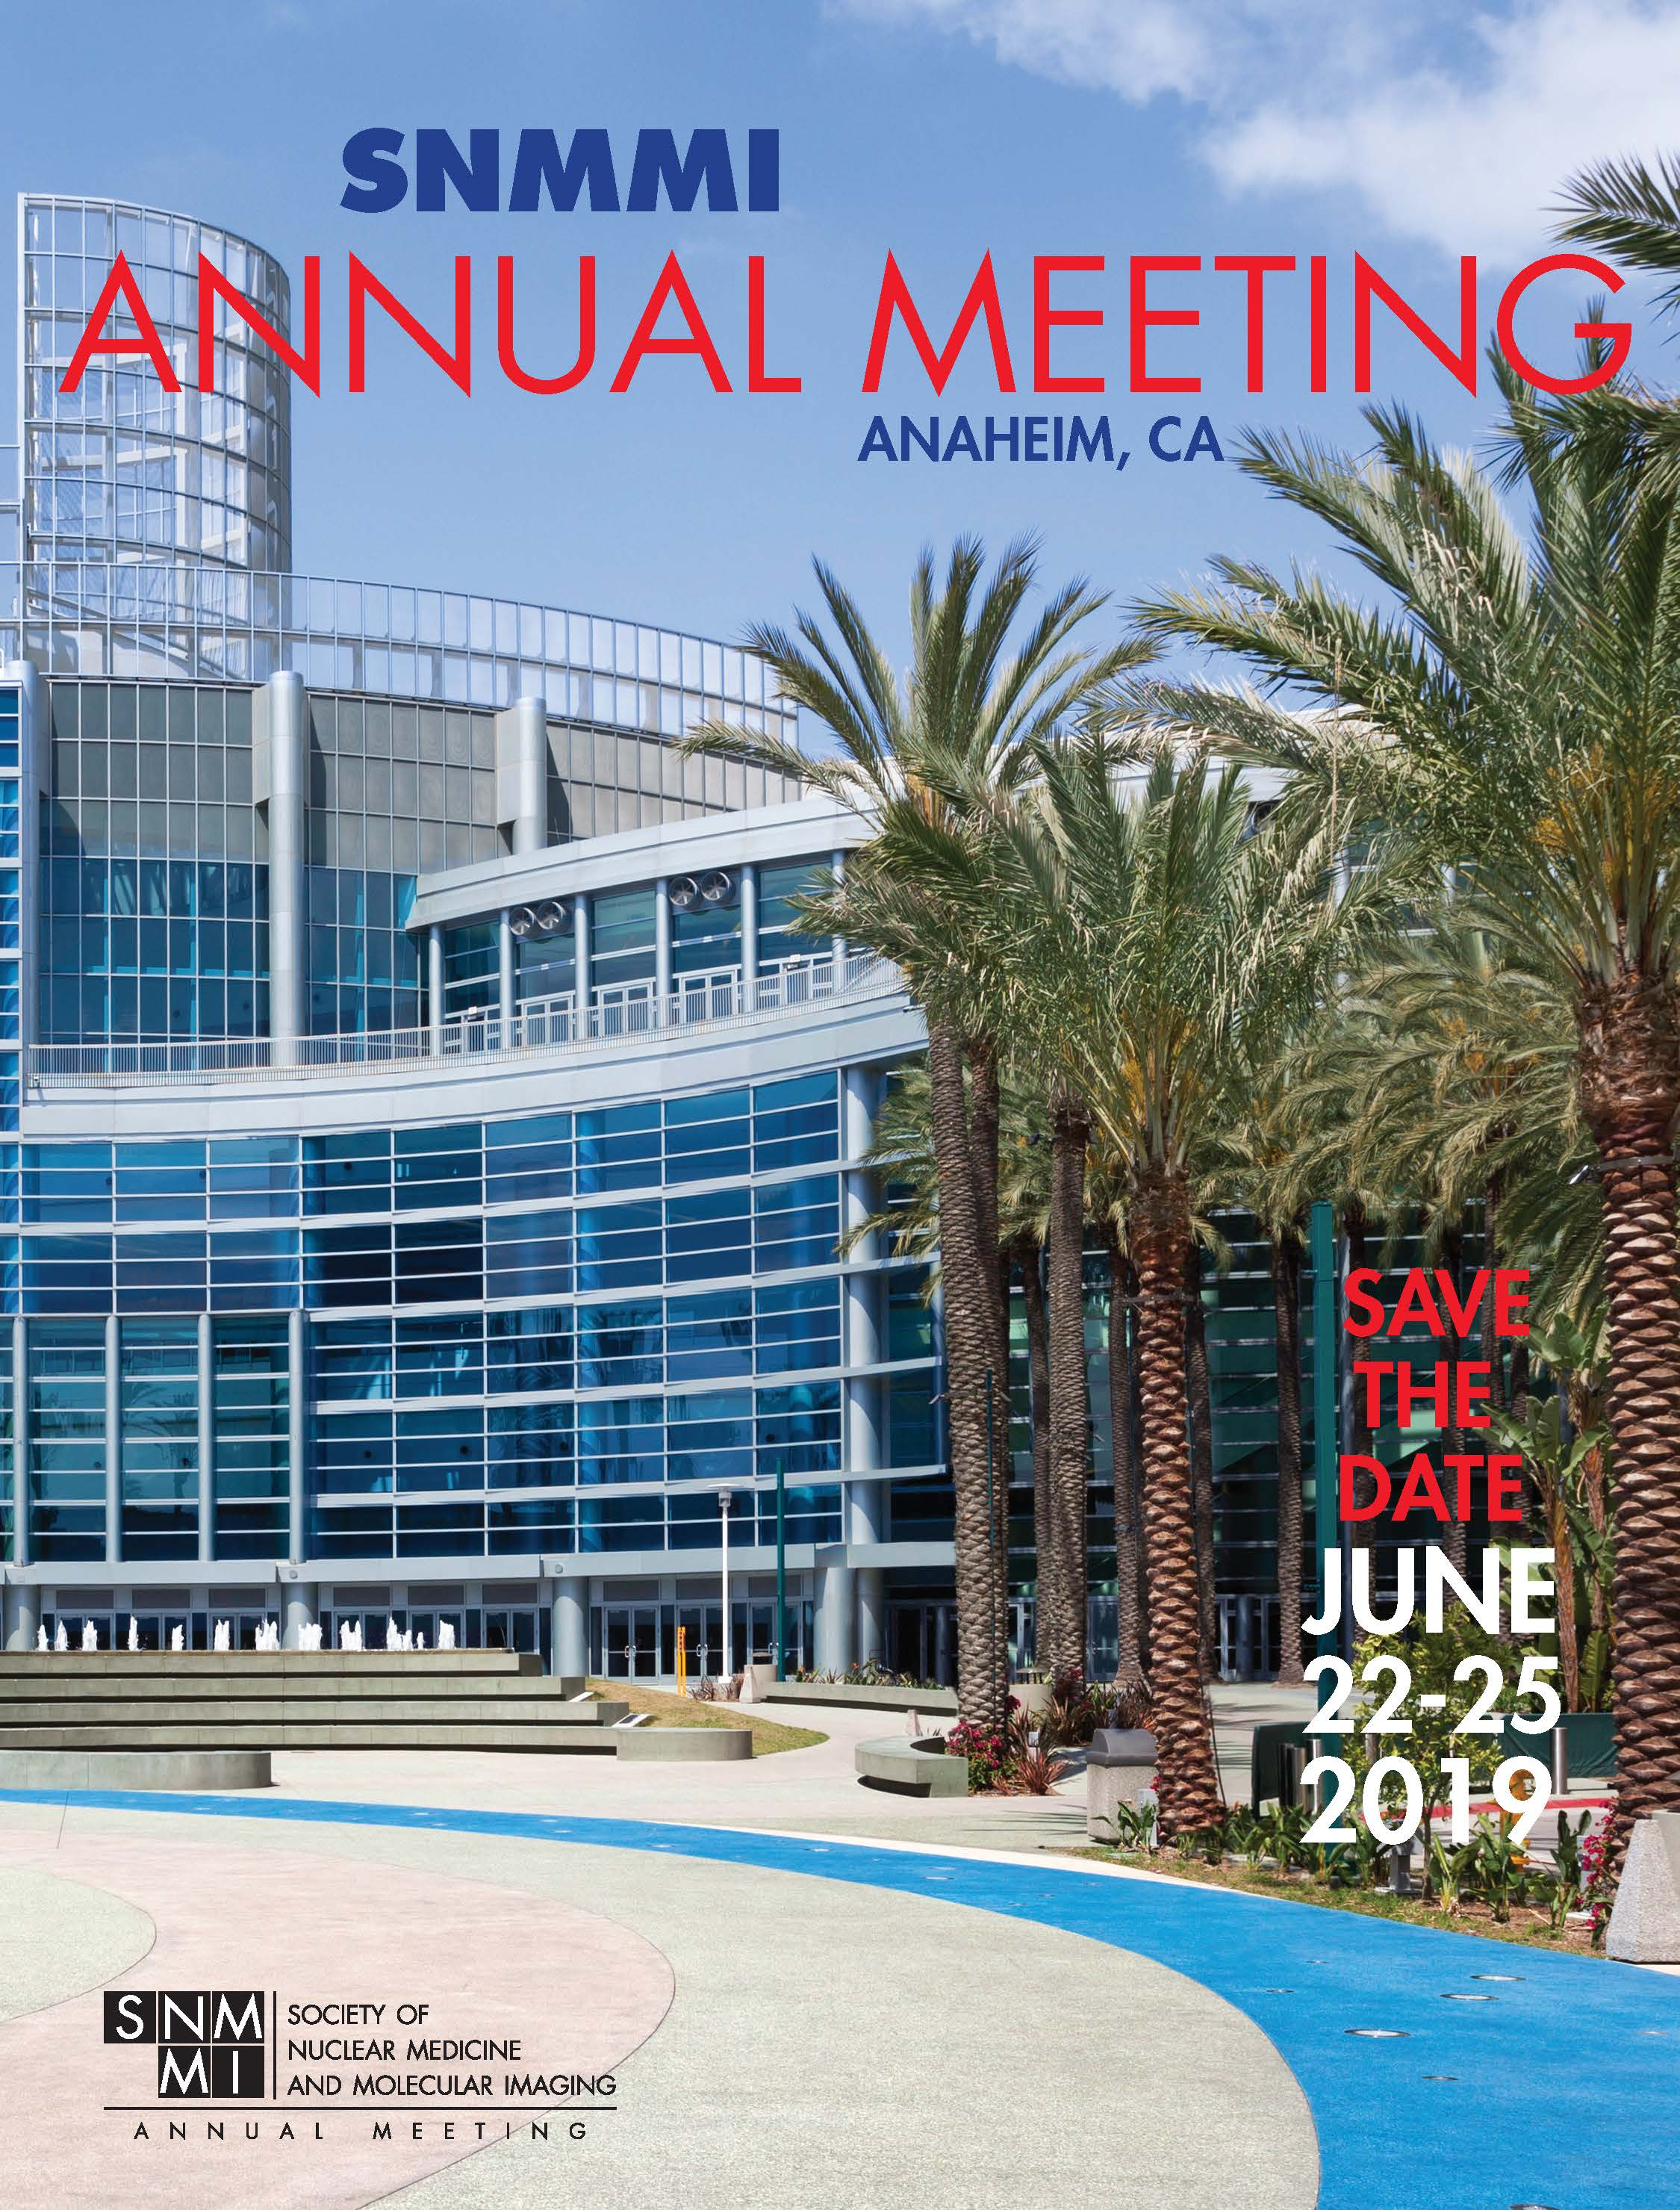 SNMMI 2019 Annual Meeting - SNMMI